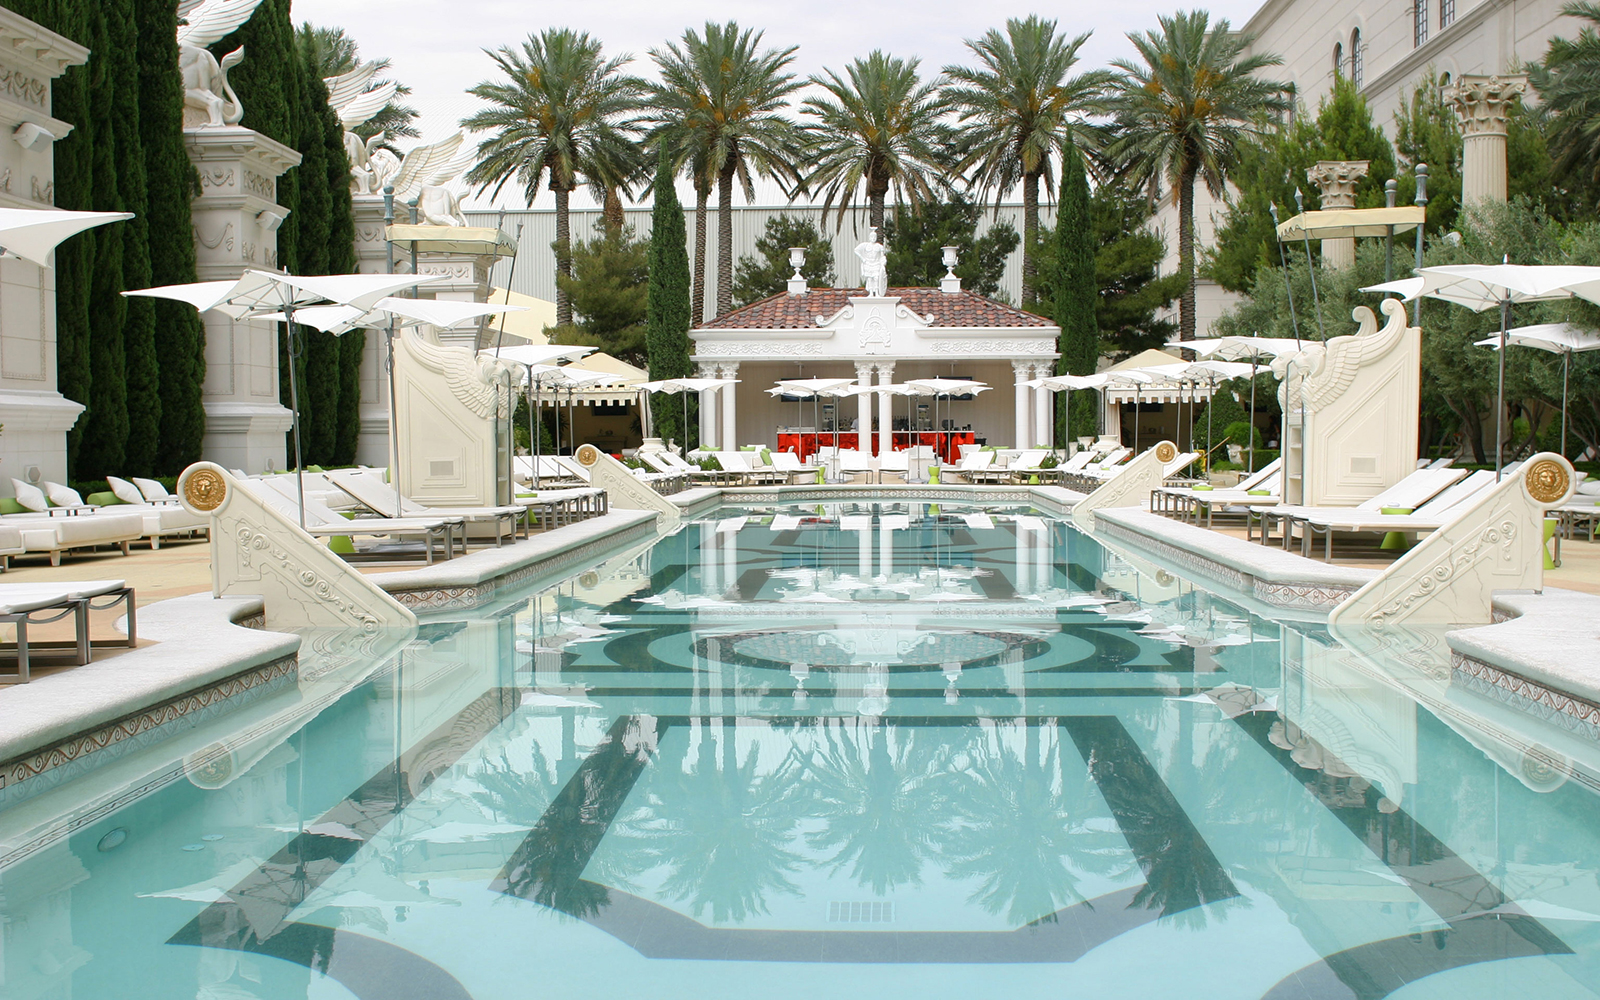 Best Pools in Las Vegas: Garden of the Gods Pool Oasis, Caesars Palace